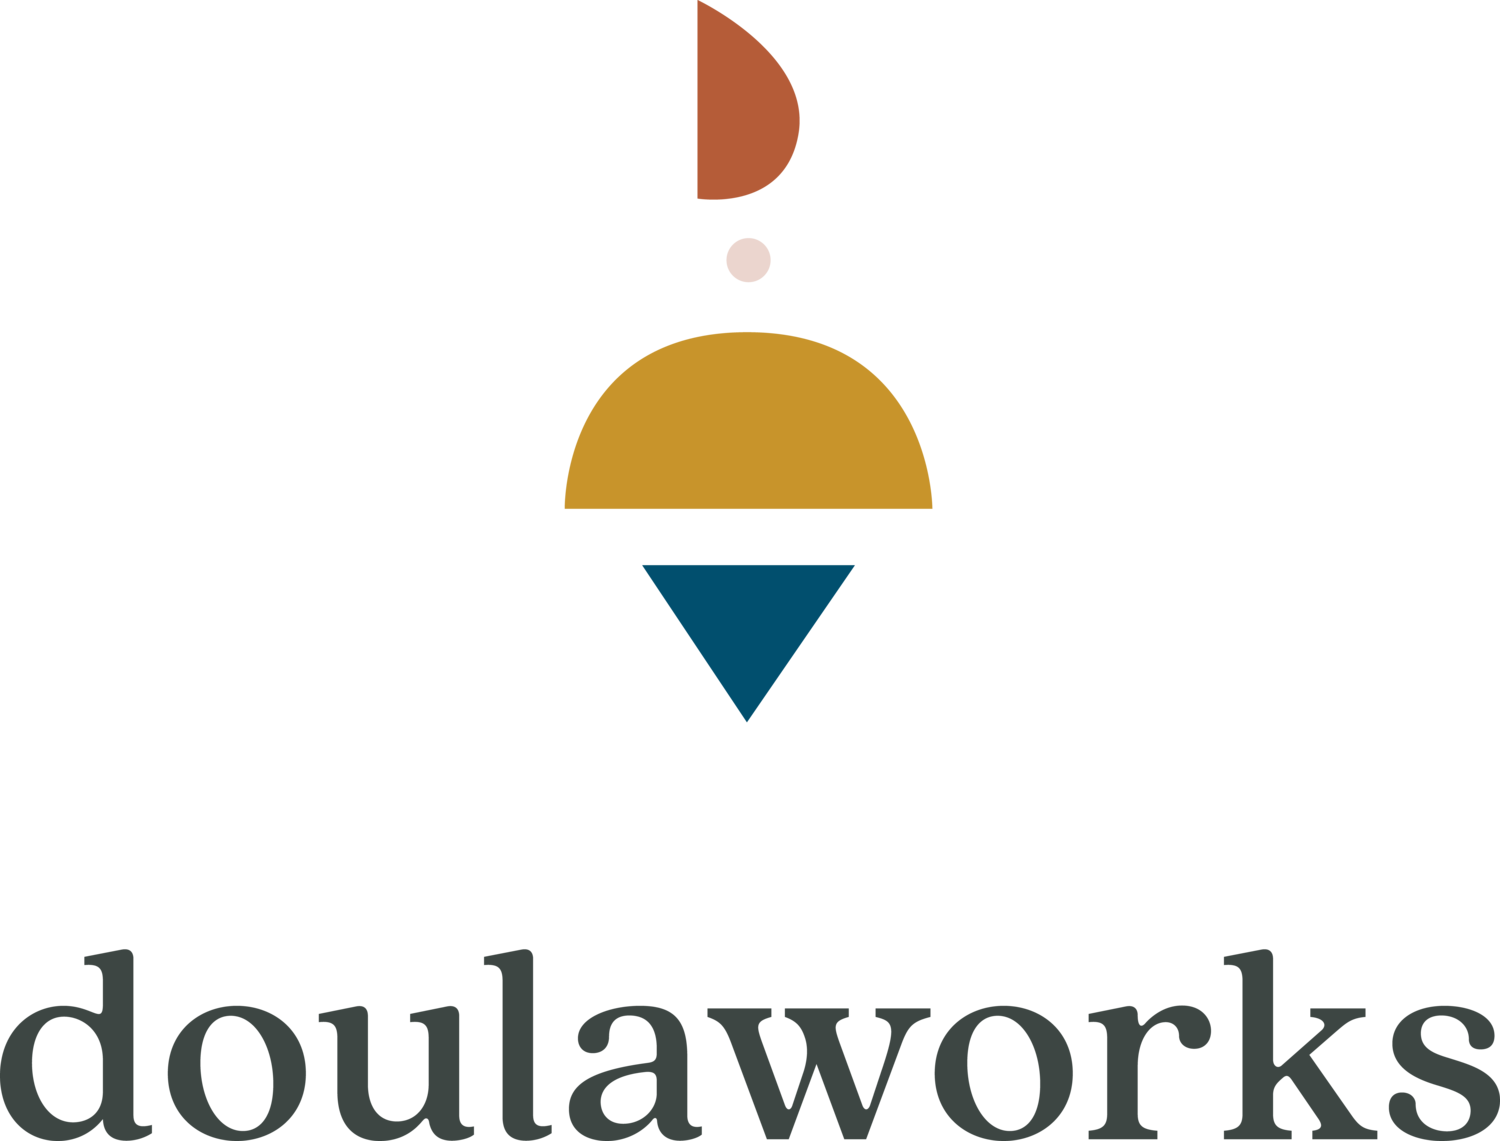 DoulaWorks | Doula Services & Childbirth Education based in Los Angeles, California